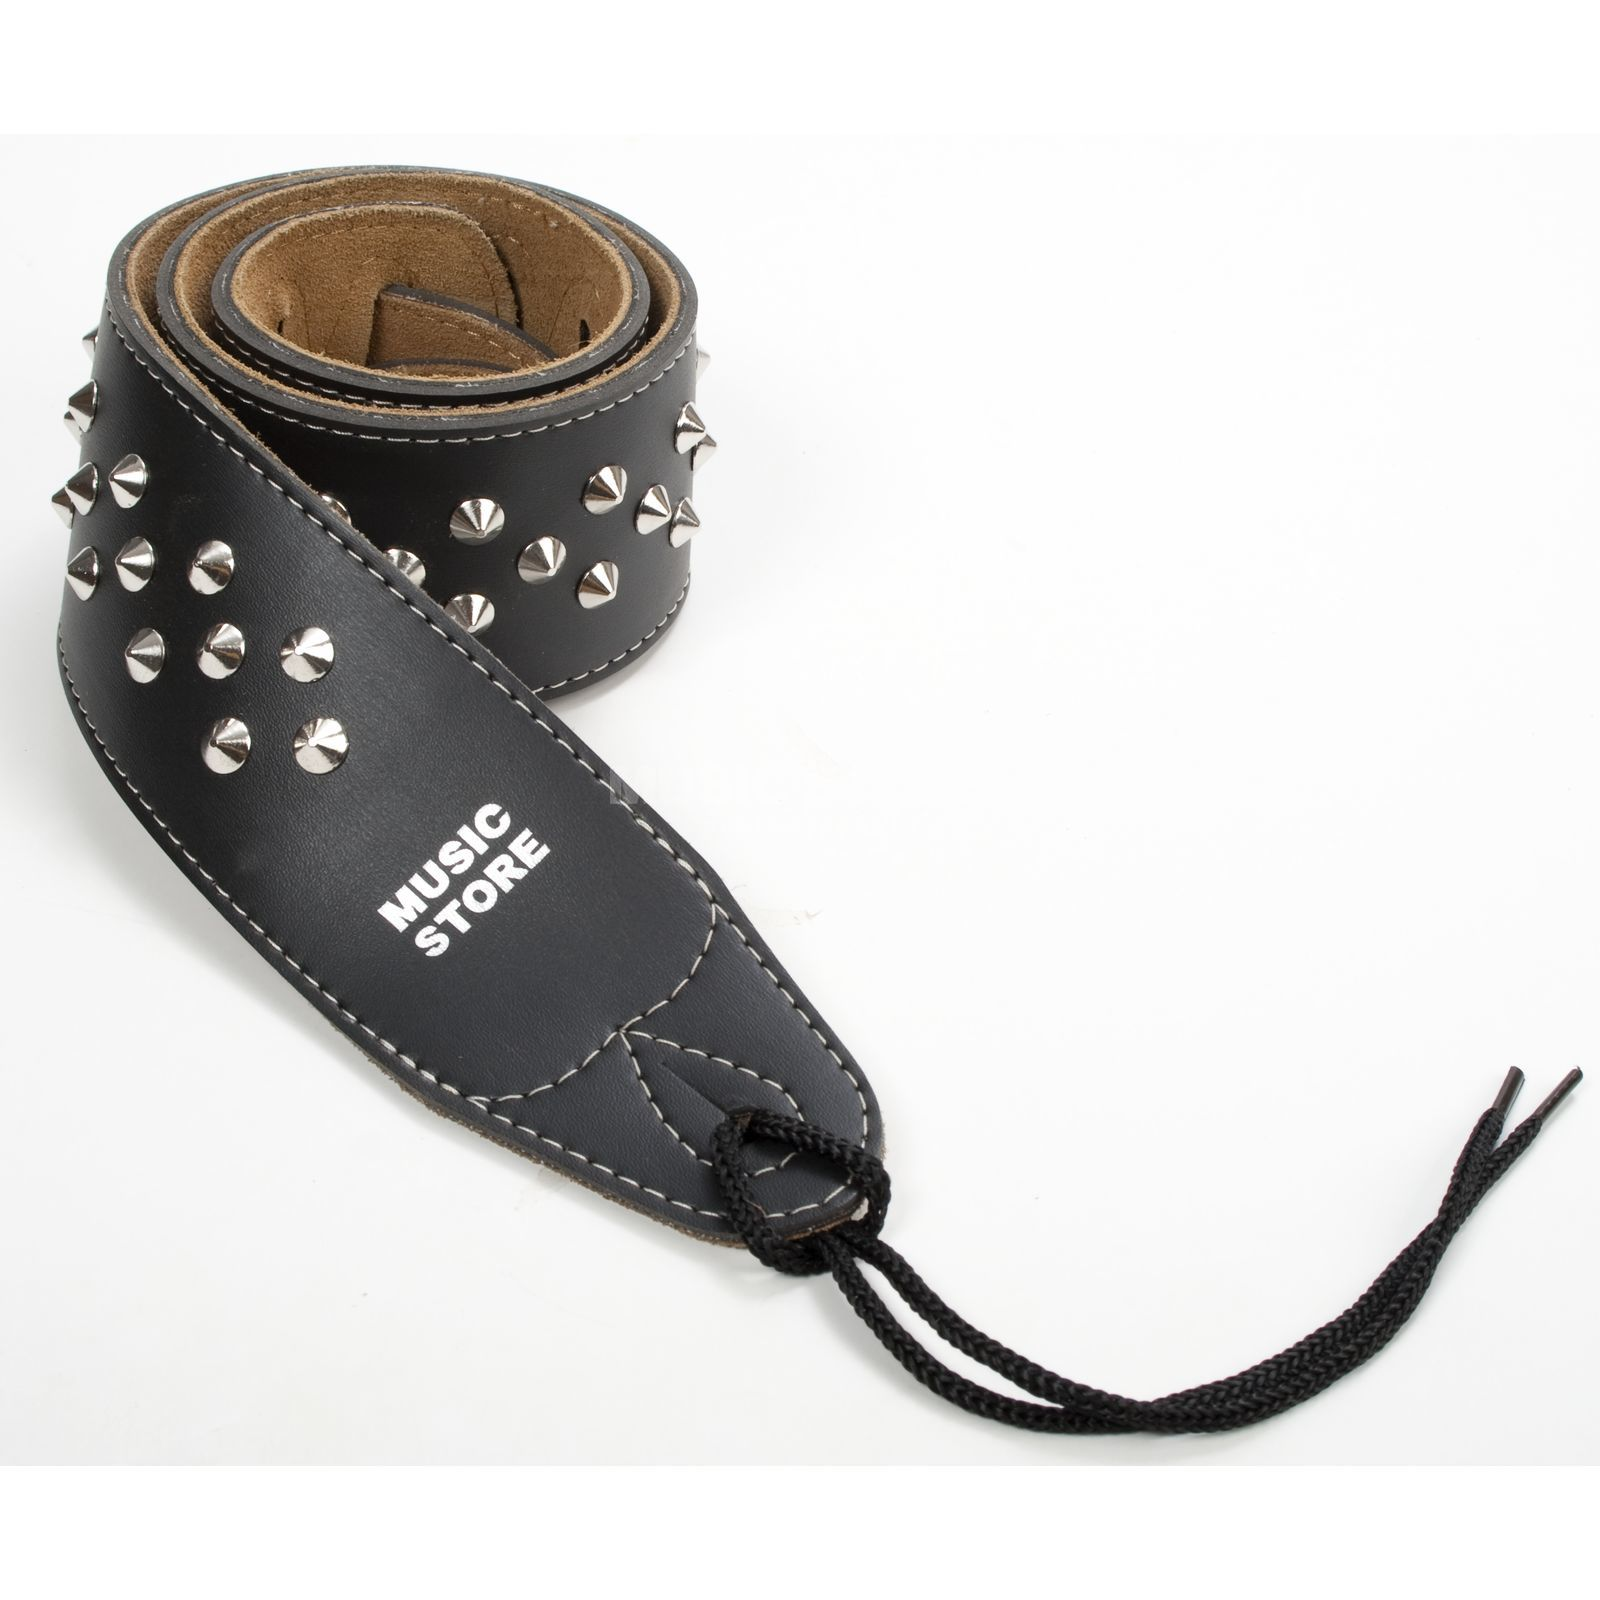 MUSIC STORE Guitar Strap 4663 Black Leather Produktbillede